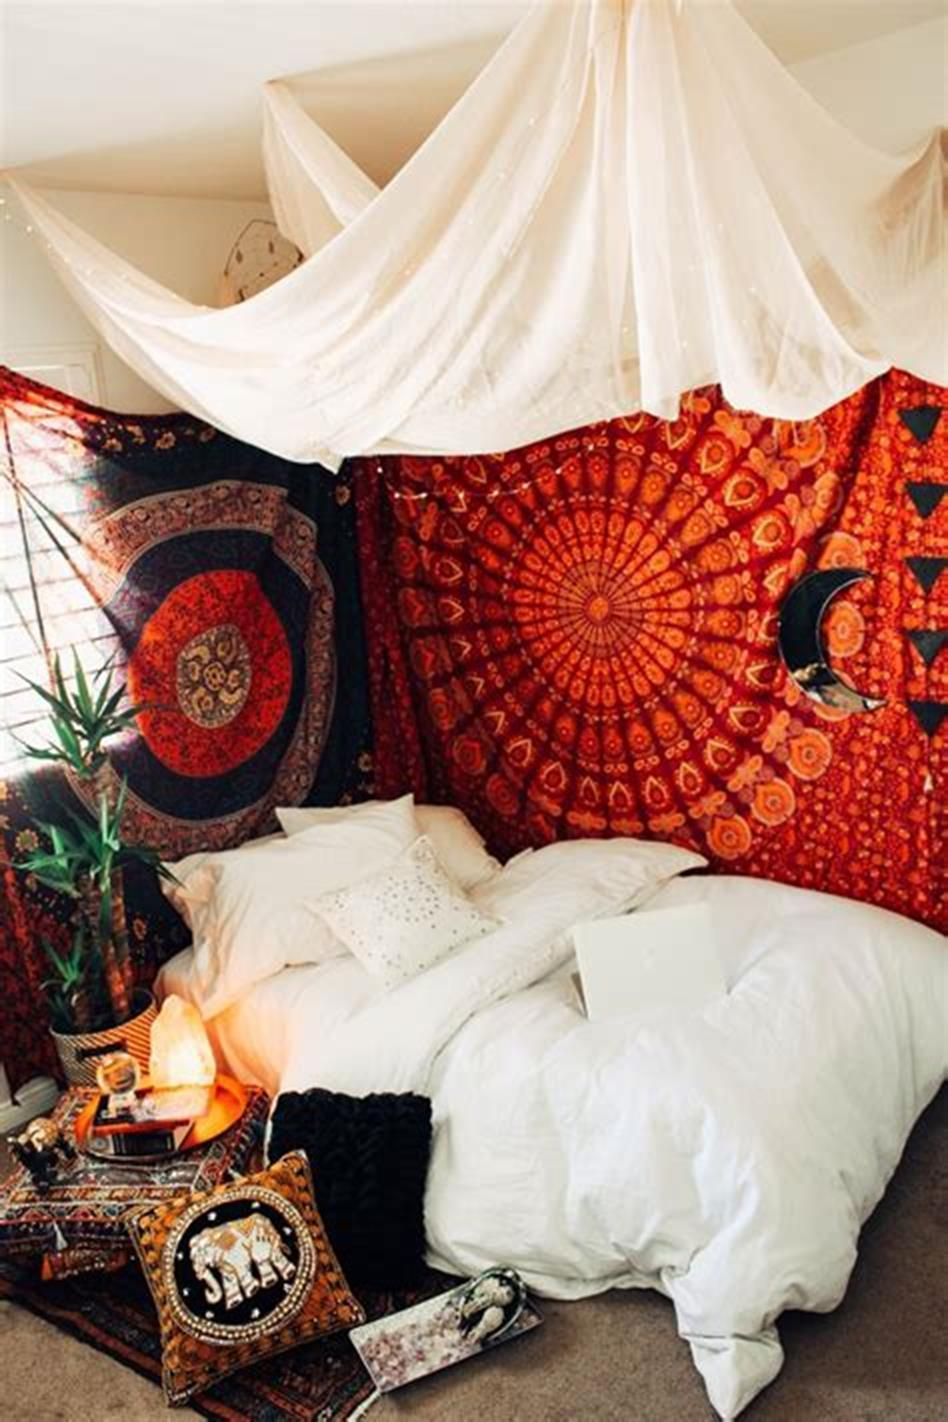 43 Awesome Bohemian Style Bedroom Design And Decorating Ideas Bohemian Bedroom Design